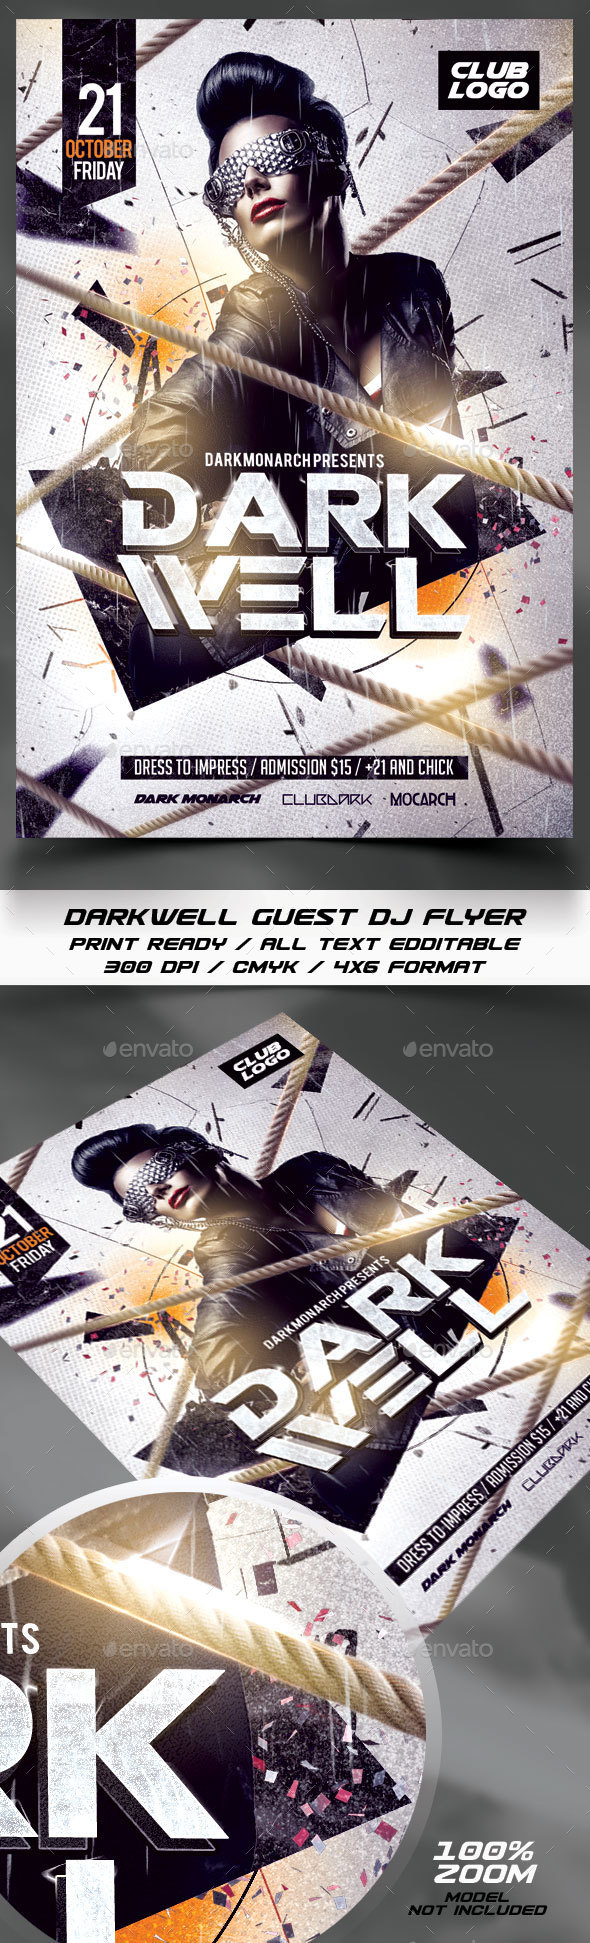 Guest Dj Flyer Template - Events Flyers